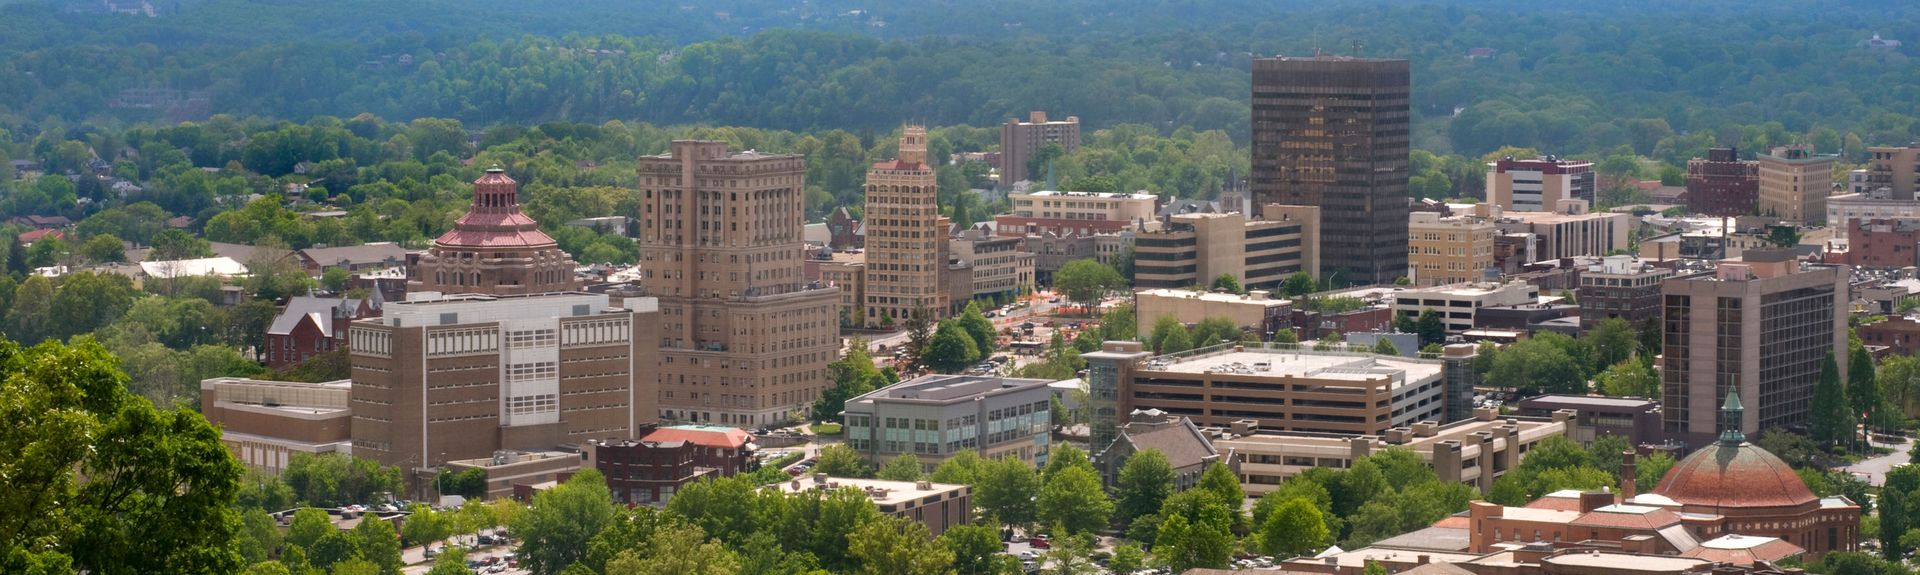 Asheville, Carolina do Norte, Estados Unidos